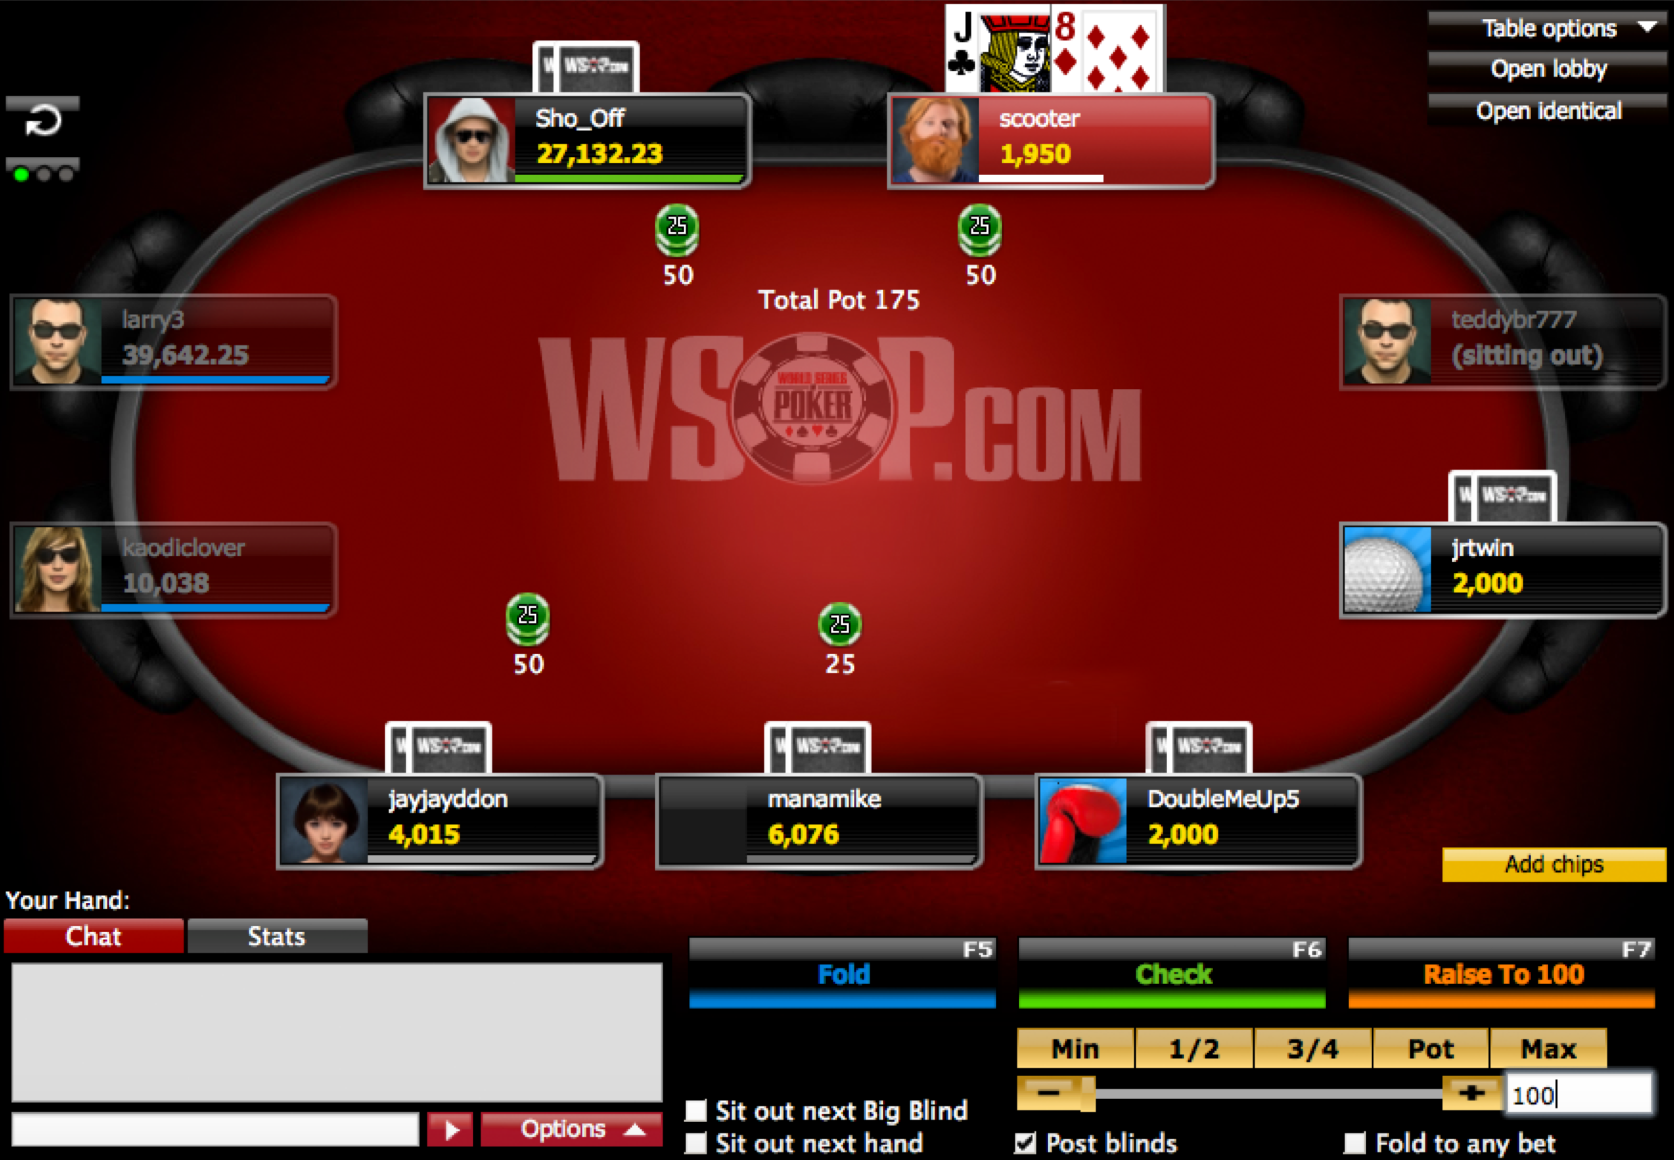 United States Online Poker